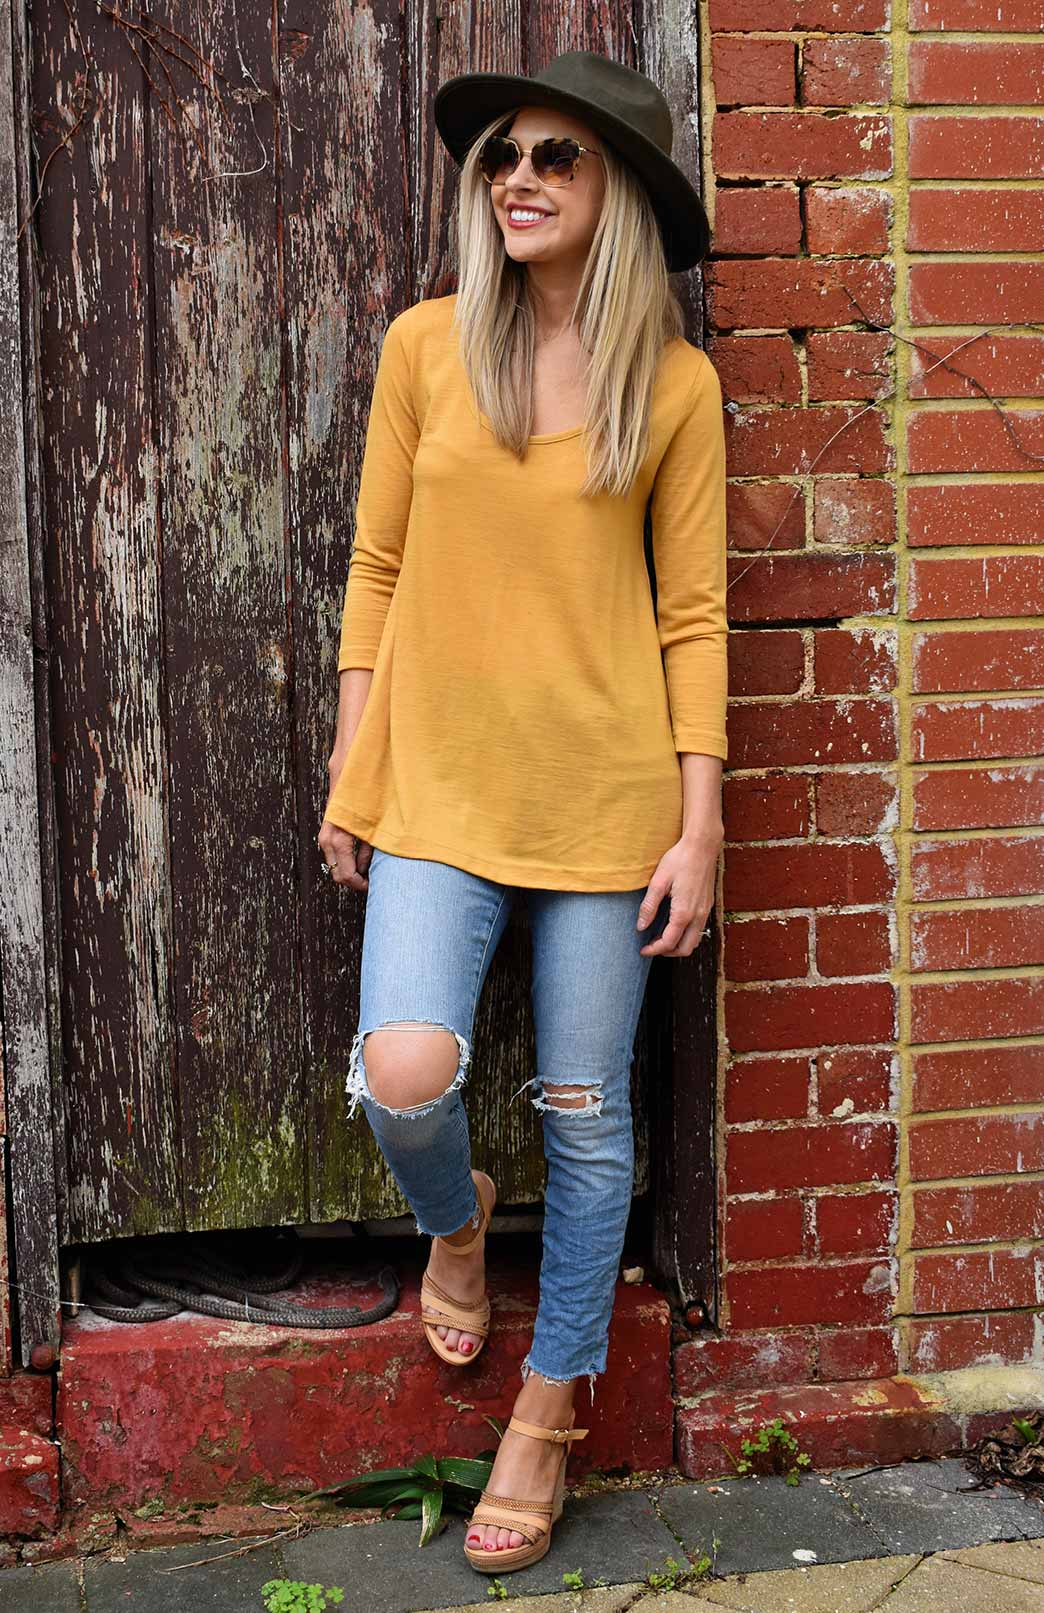 Rennie Top - Women's Merino Wool Mustard Yellow Sleeved Swing Top with Scooped Neckline - Smitten Merino Tasmania Australia